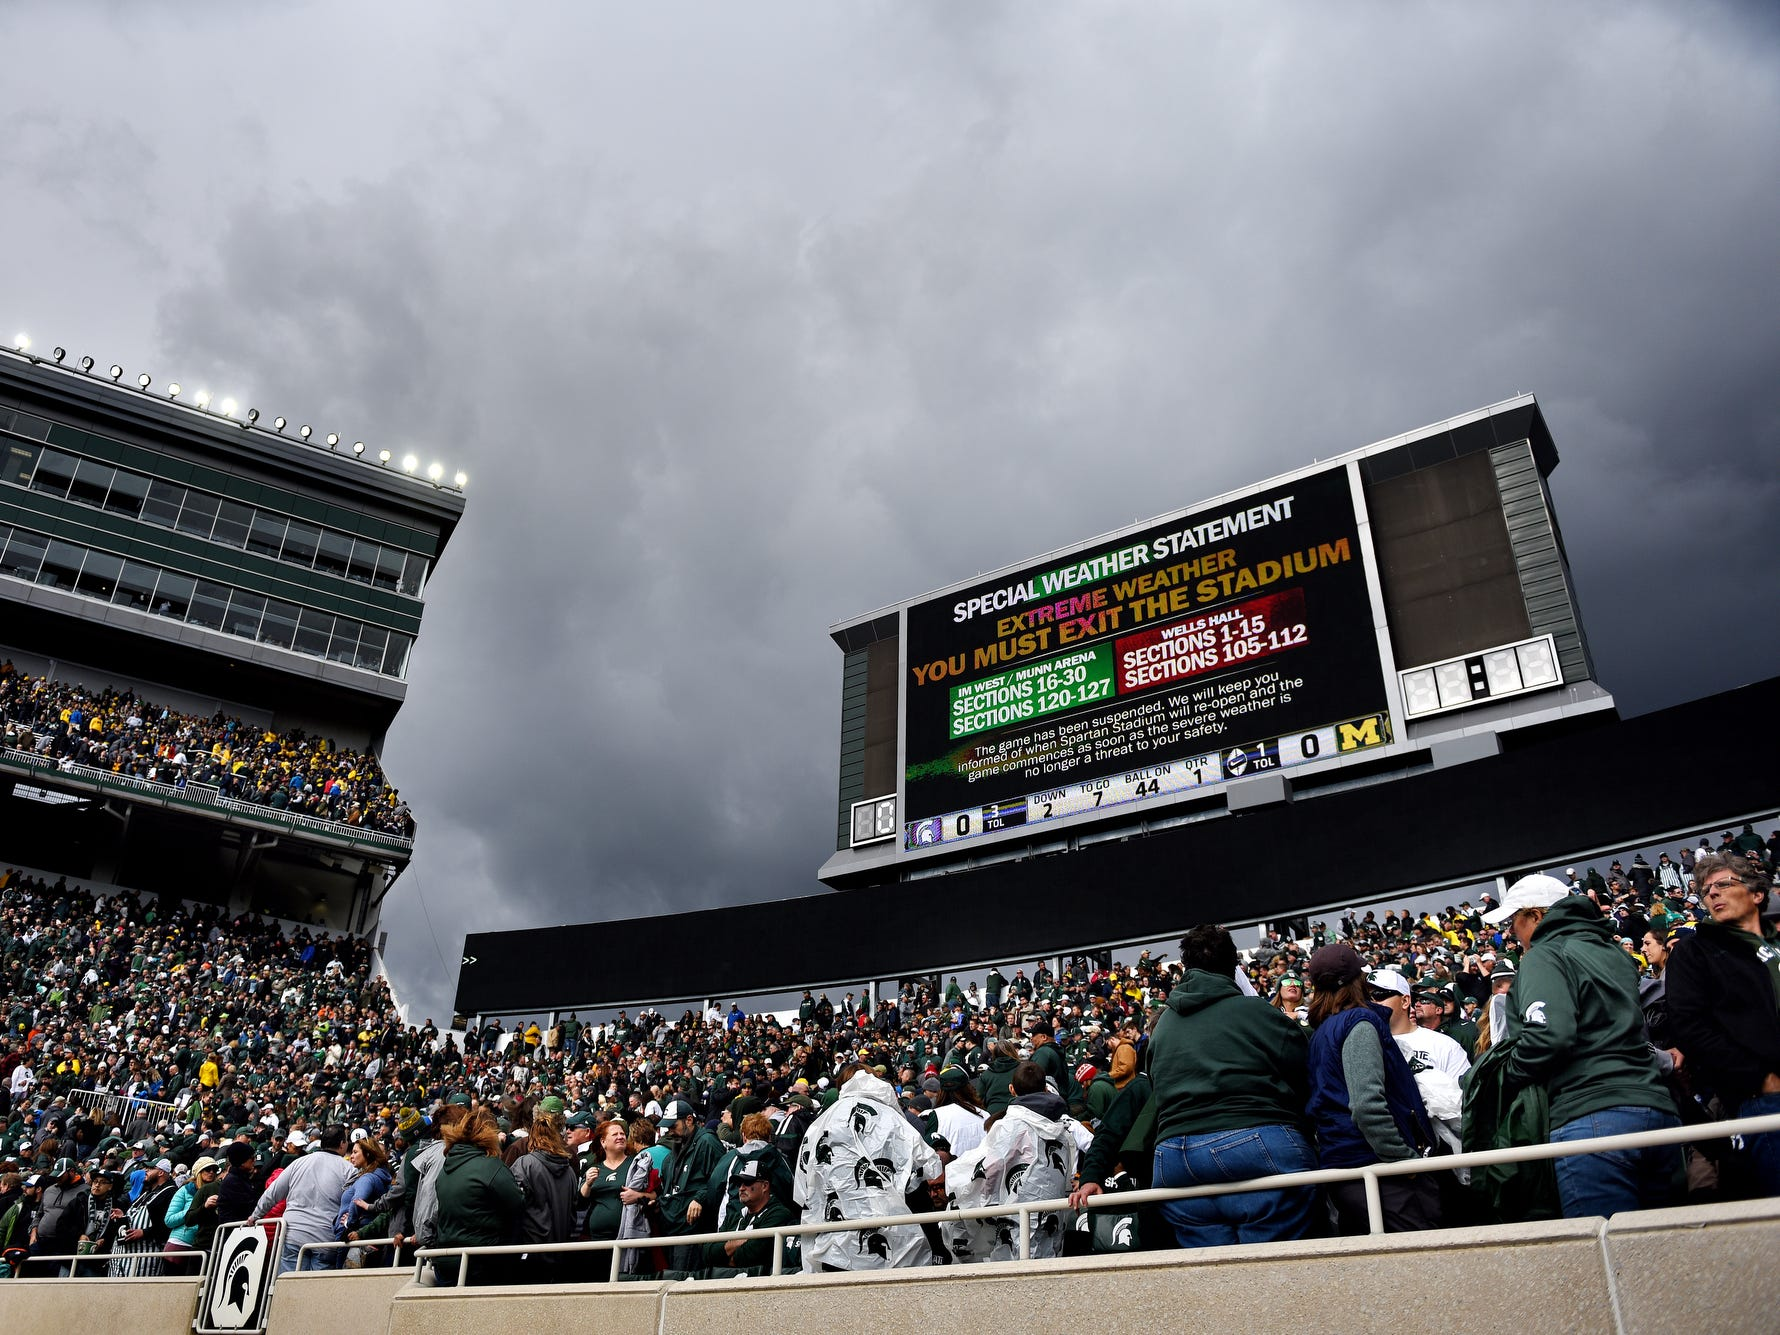 Storm clouds move in over Spartan Stadium after fans were told over the loud speaker to evacuate during an extreme weather delay in the first quarter of MSU vs. U-M game on Saturday, Oct. 20, 2018, in East Lansing.